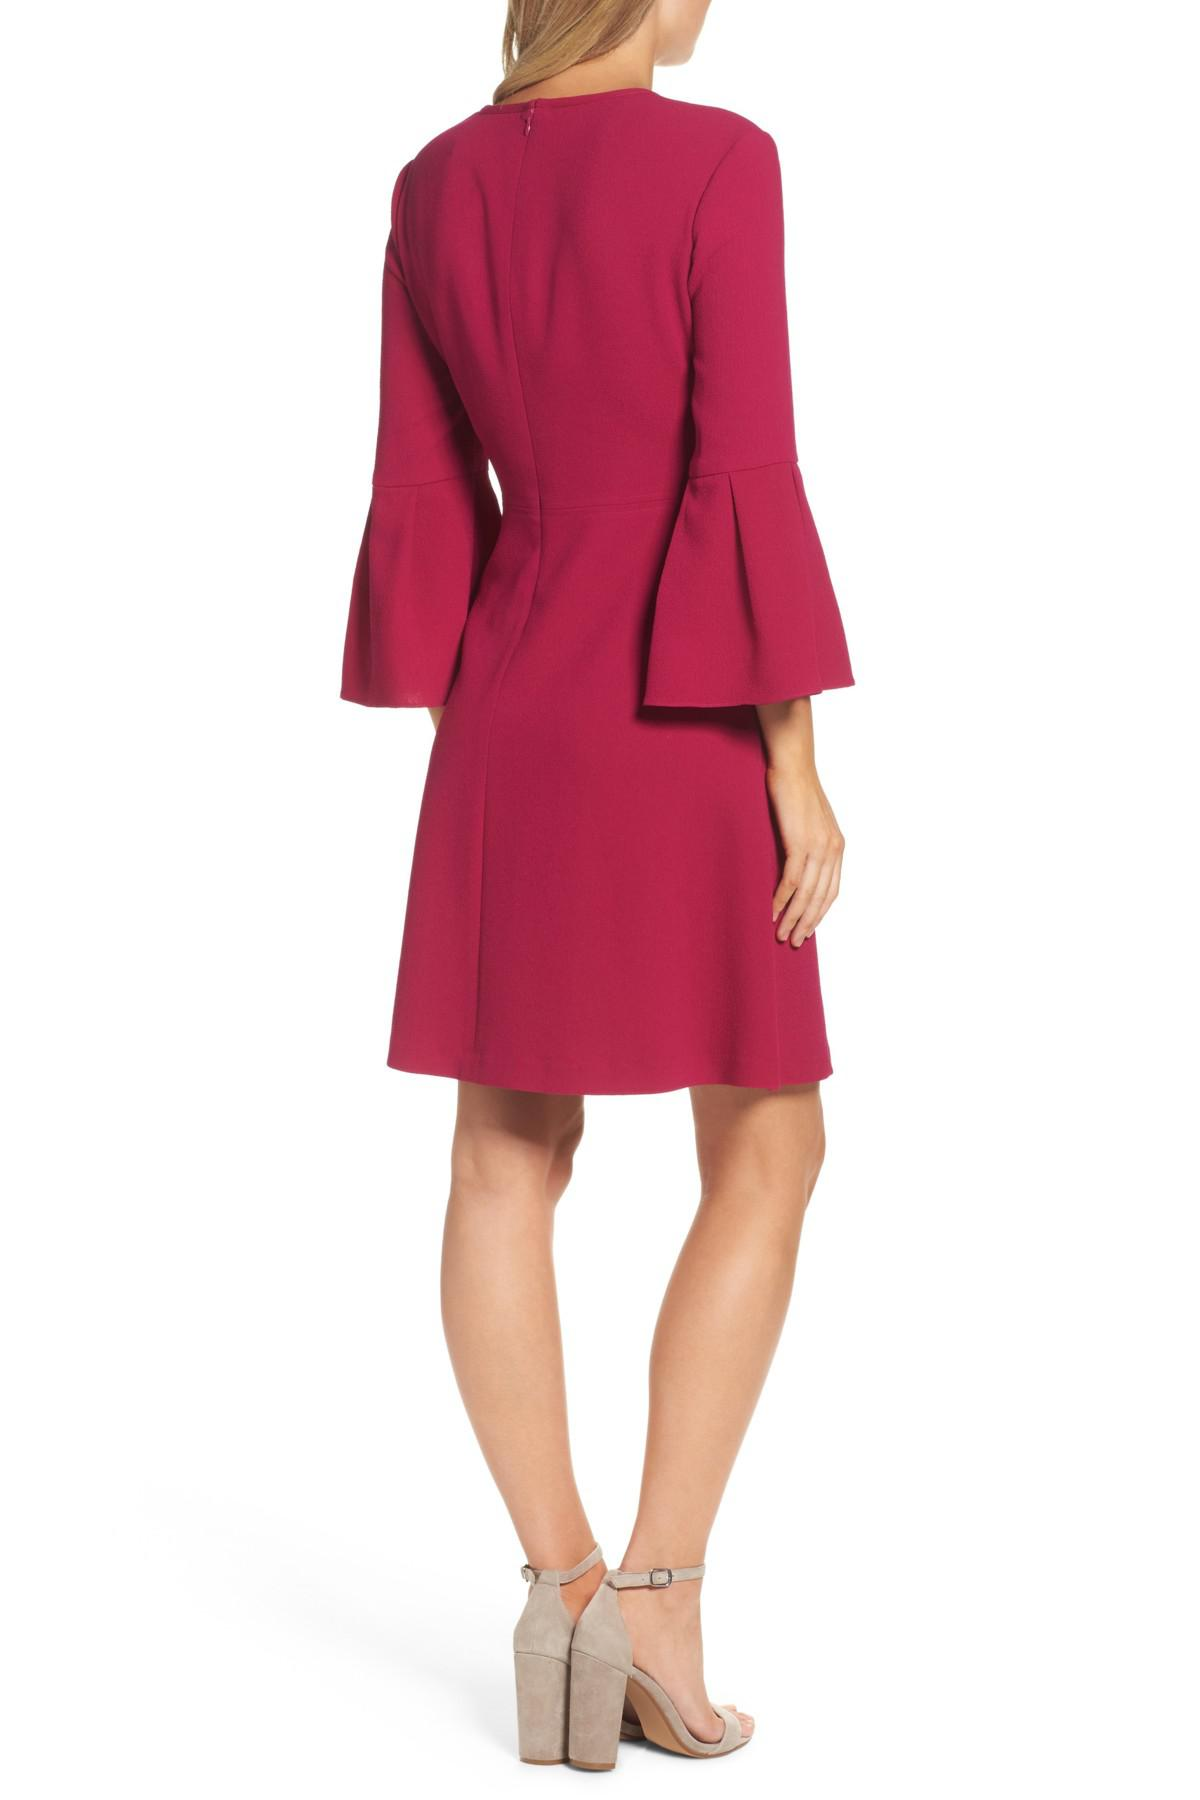 Eliza J Bell Sleeve Fit Amp Flare Dress In Red Lyst